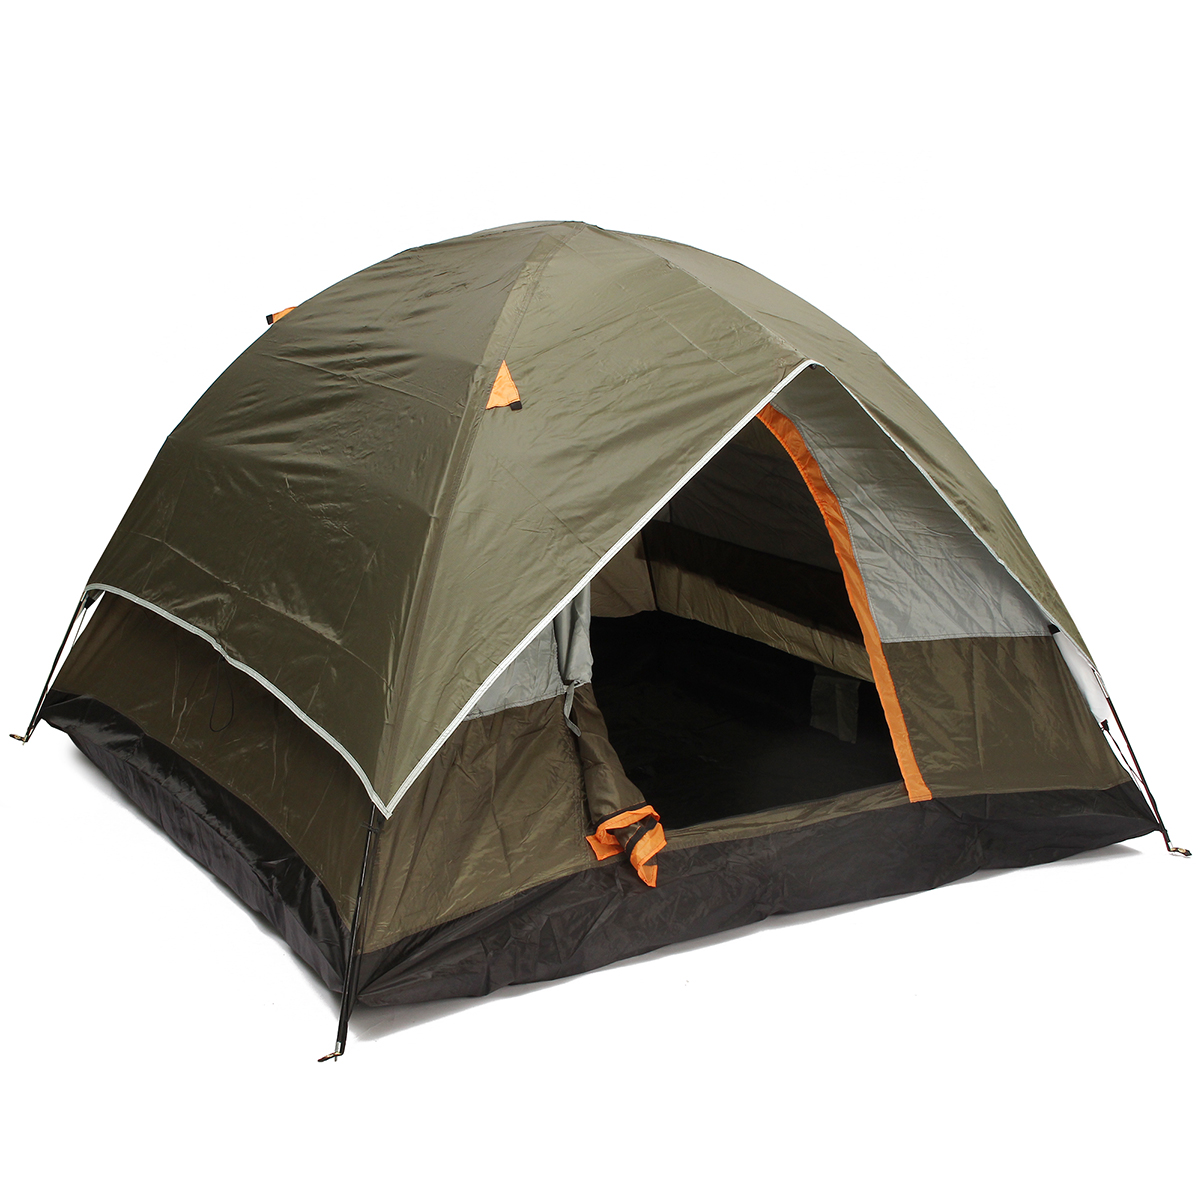 Essential Camping Equipment for Beginners